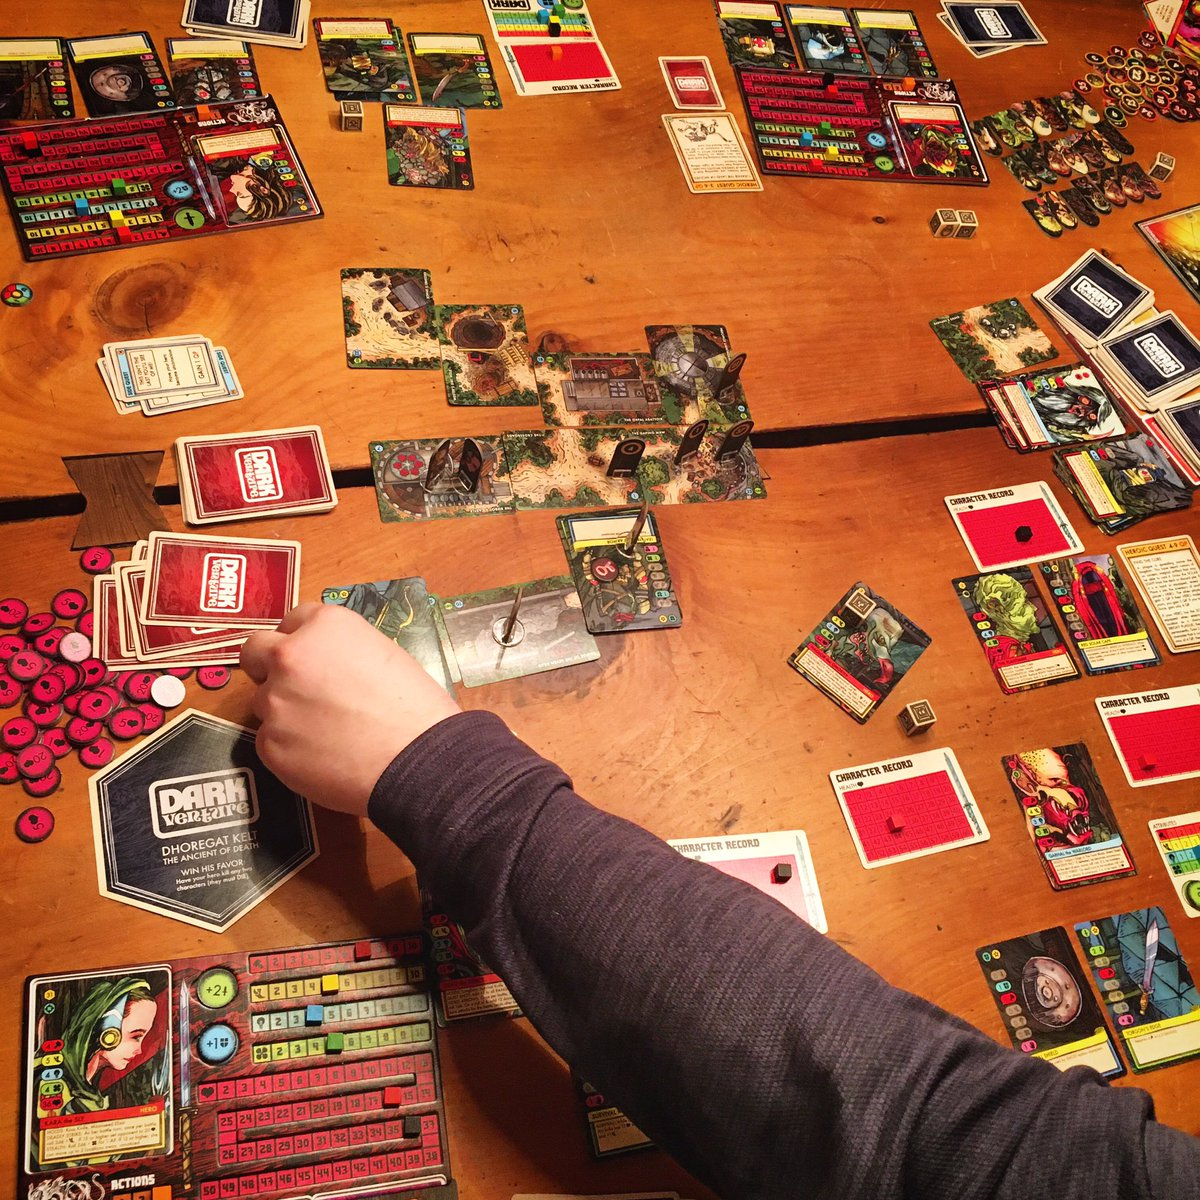 Tonight we are playing some #DarkVenture! How's your Saturday night going? Anyone else having a #gamenight? pic.twitter.com/yWlgmQyxvl